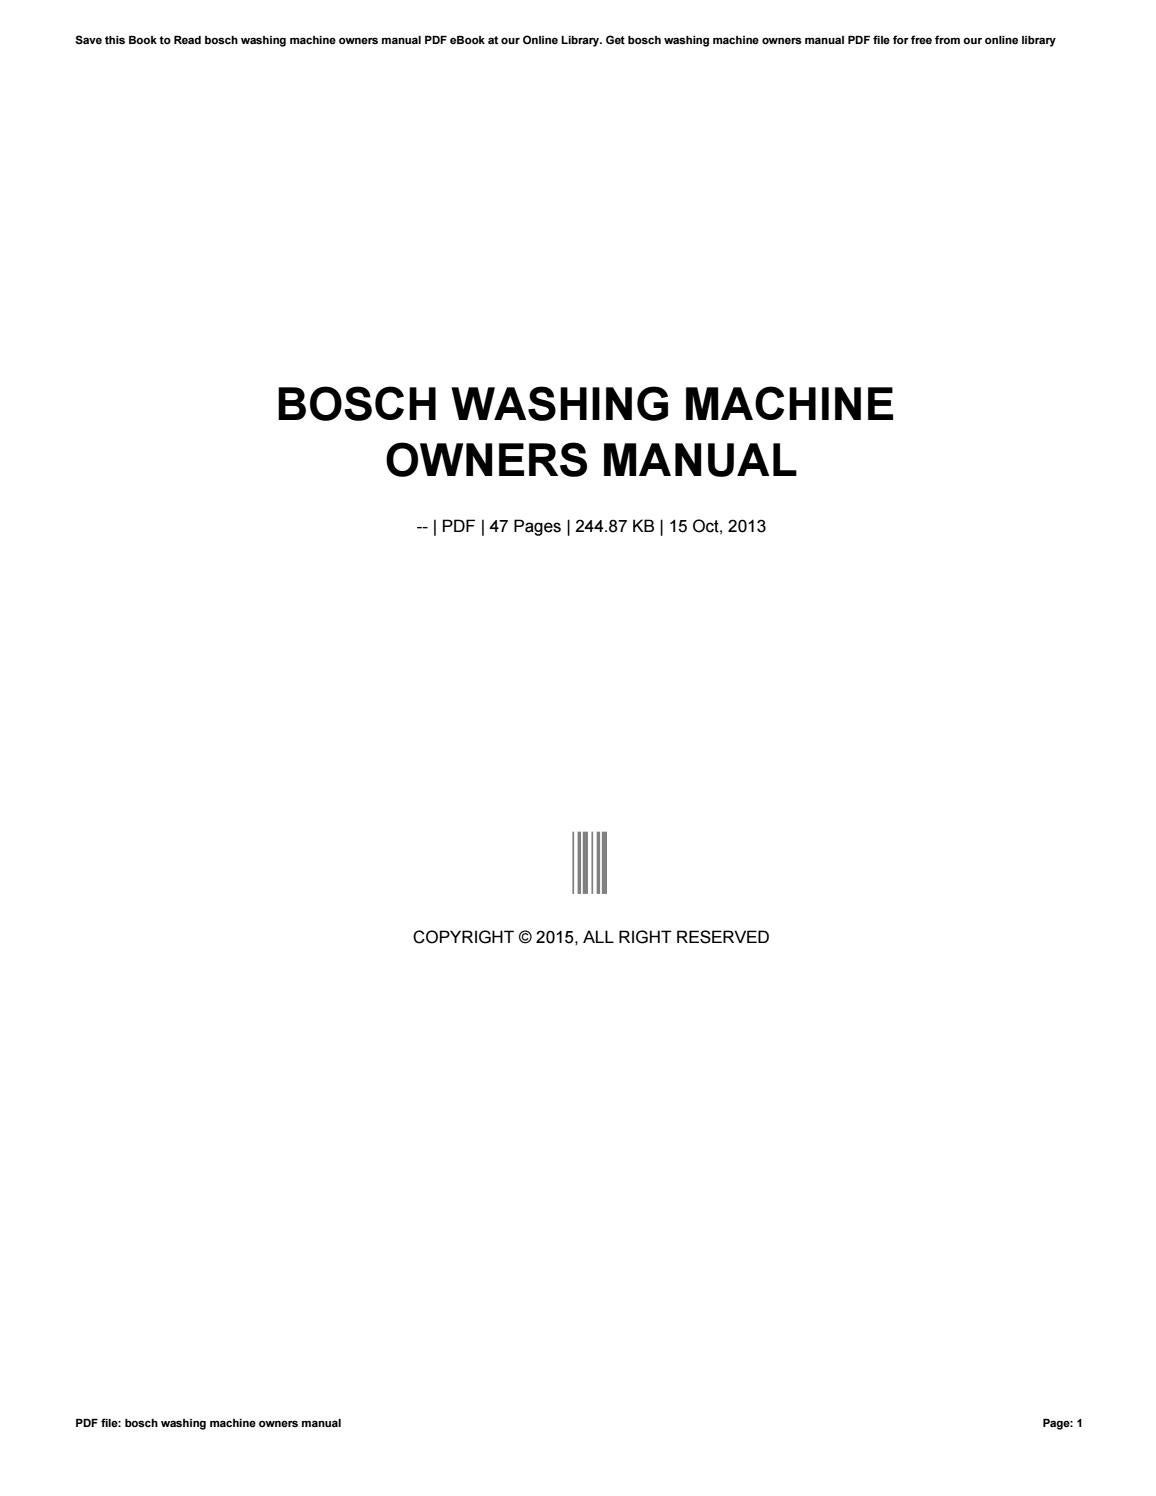 Owners manual for Bosch washing Machine to Use At the Gym